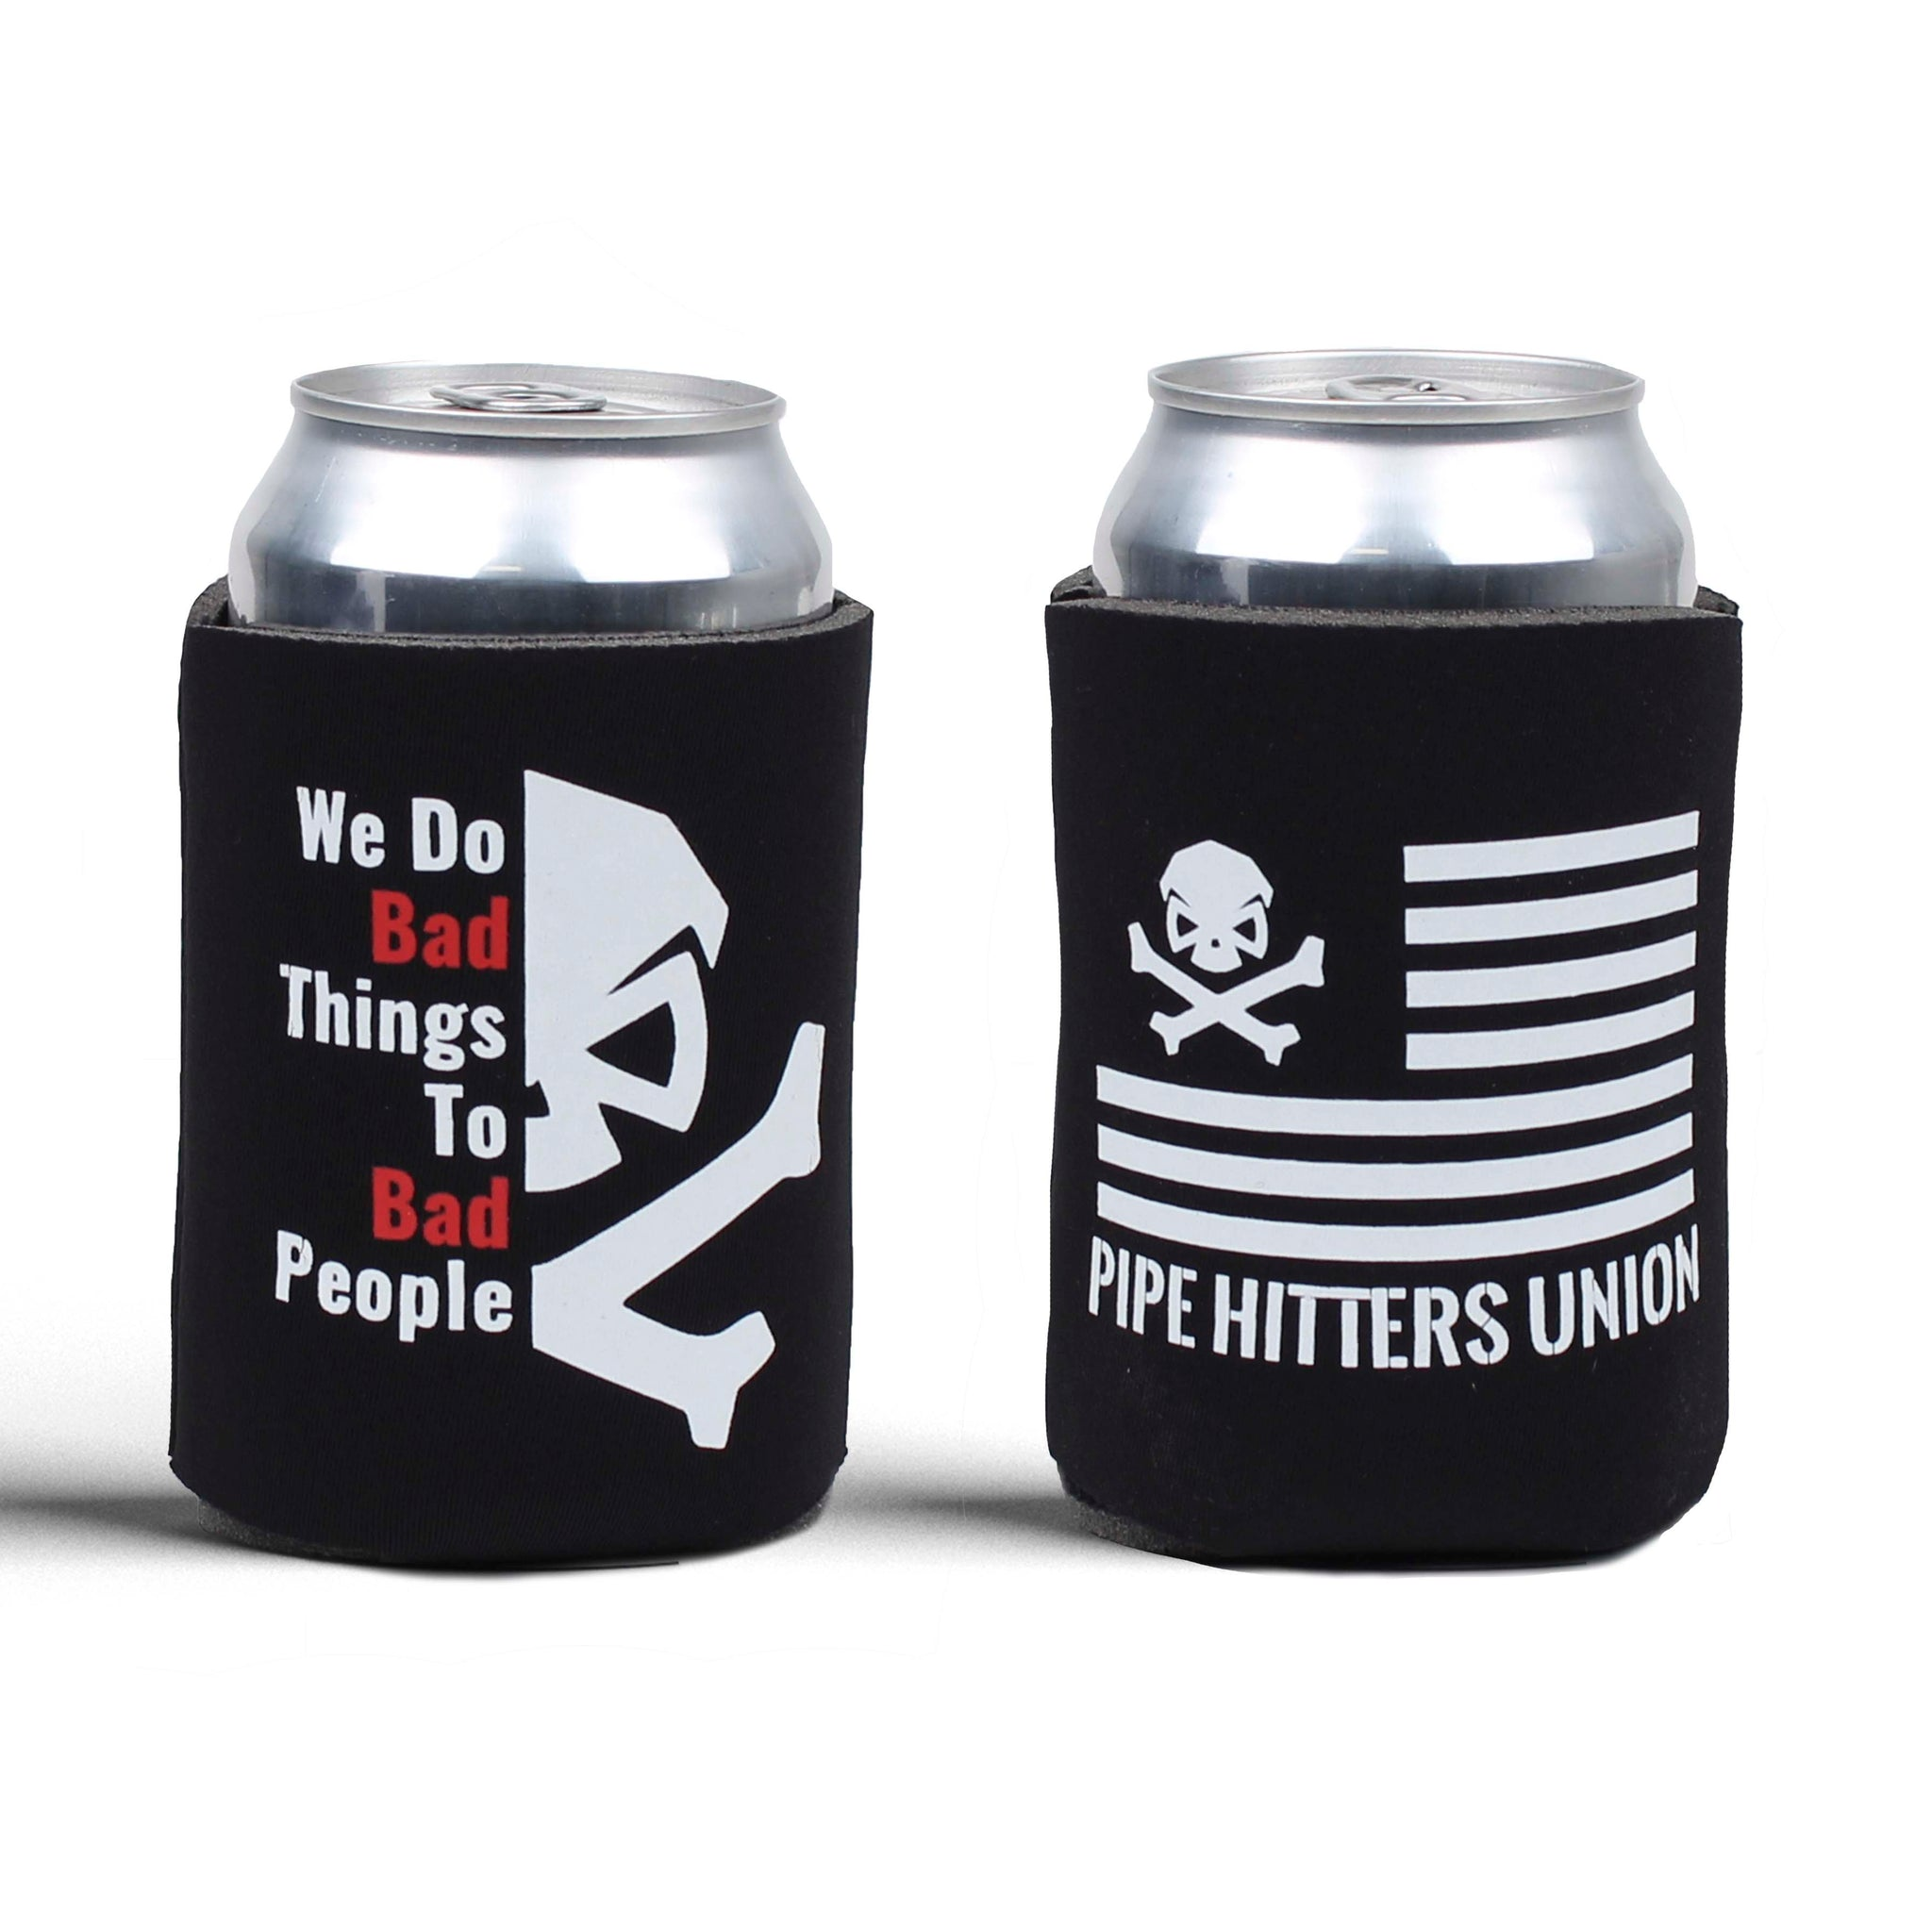 We Do Bad Things To Bad People - Drink Sleeve -  - Drink Sleeve - Pipe Hitters Union